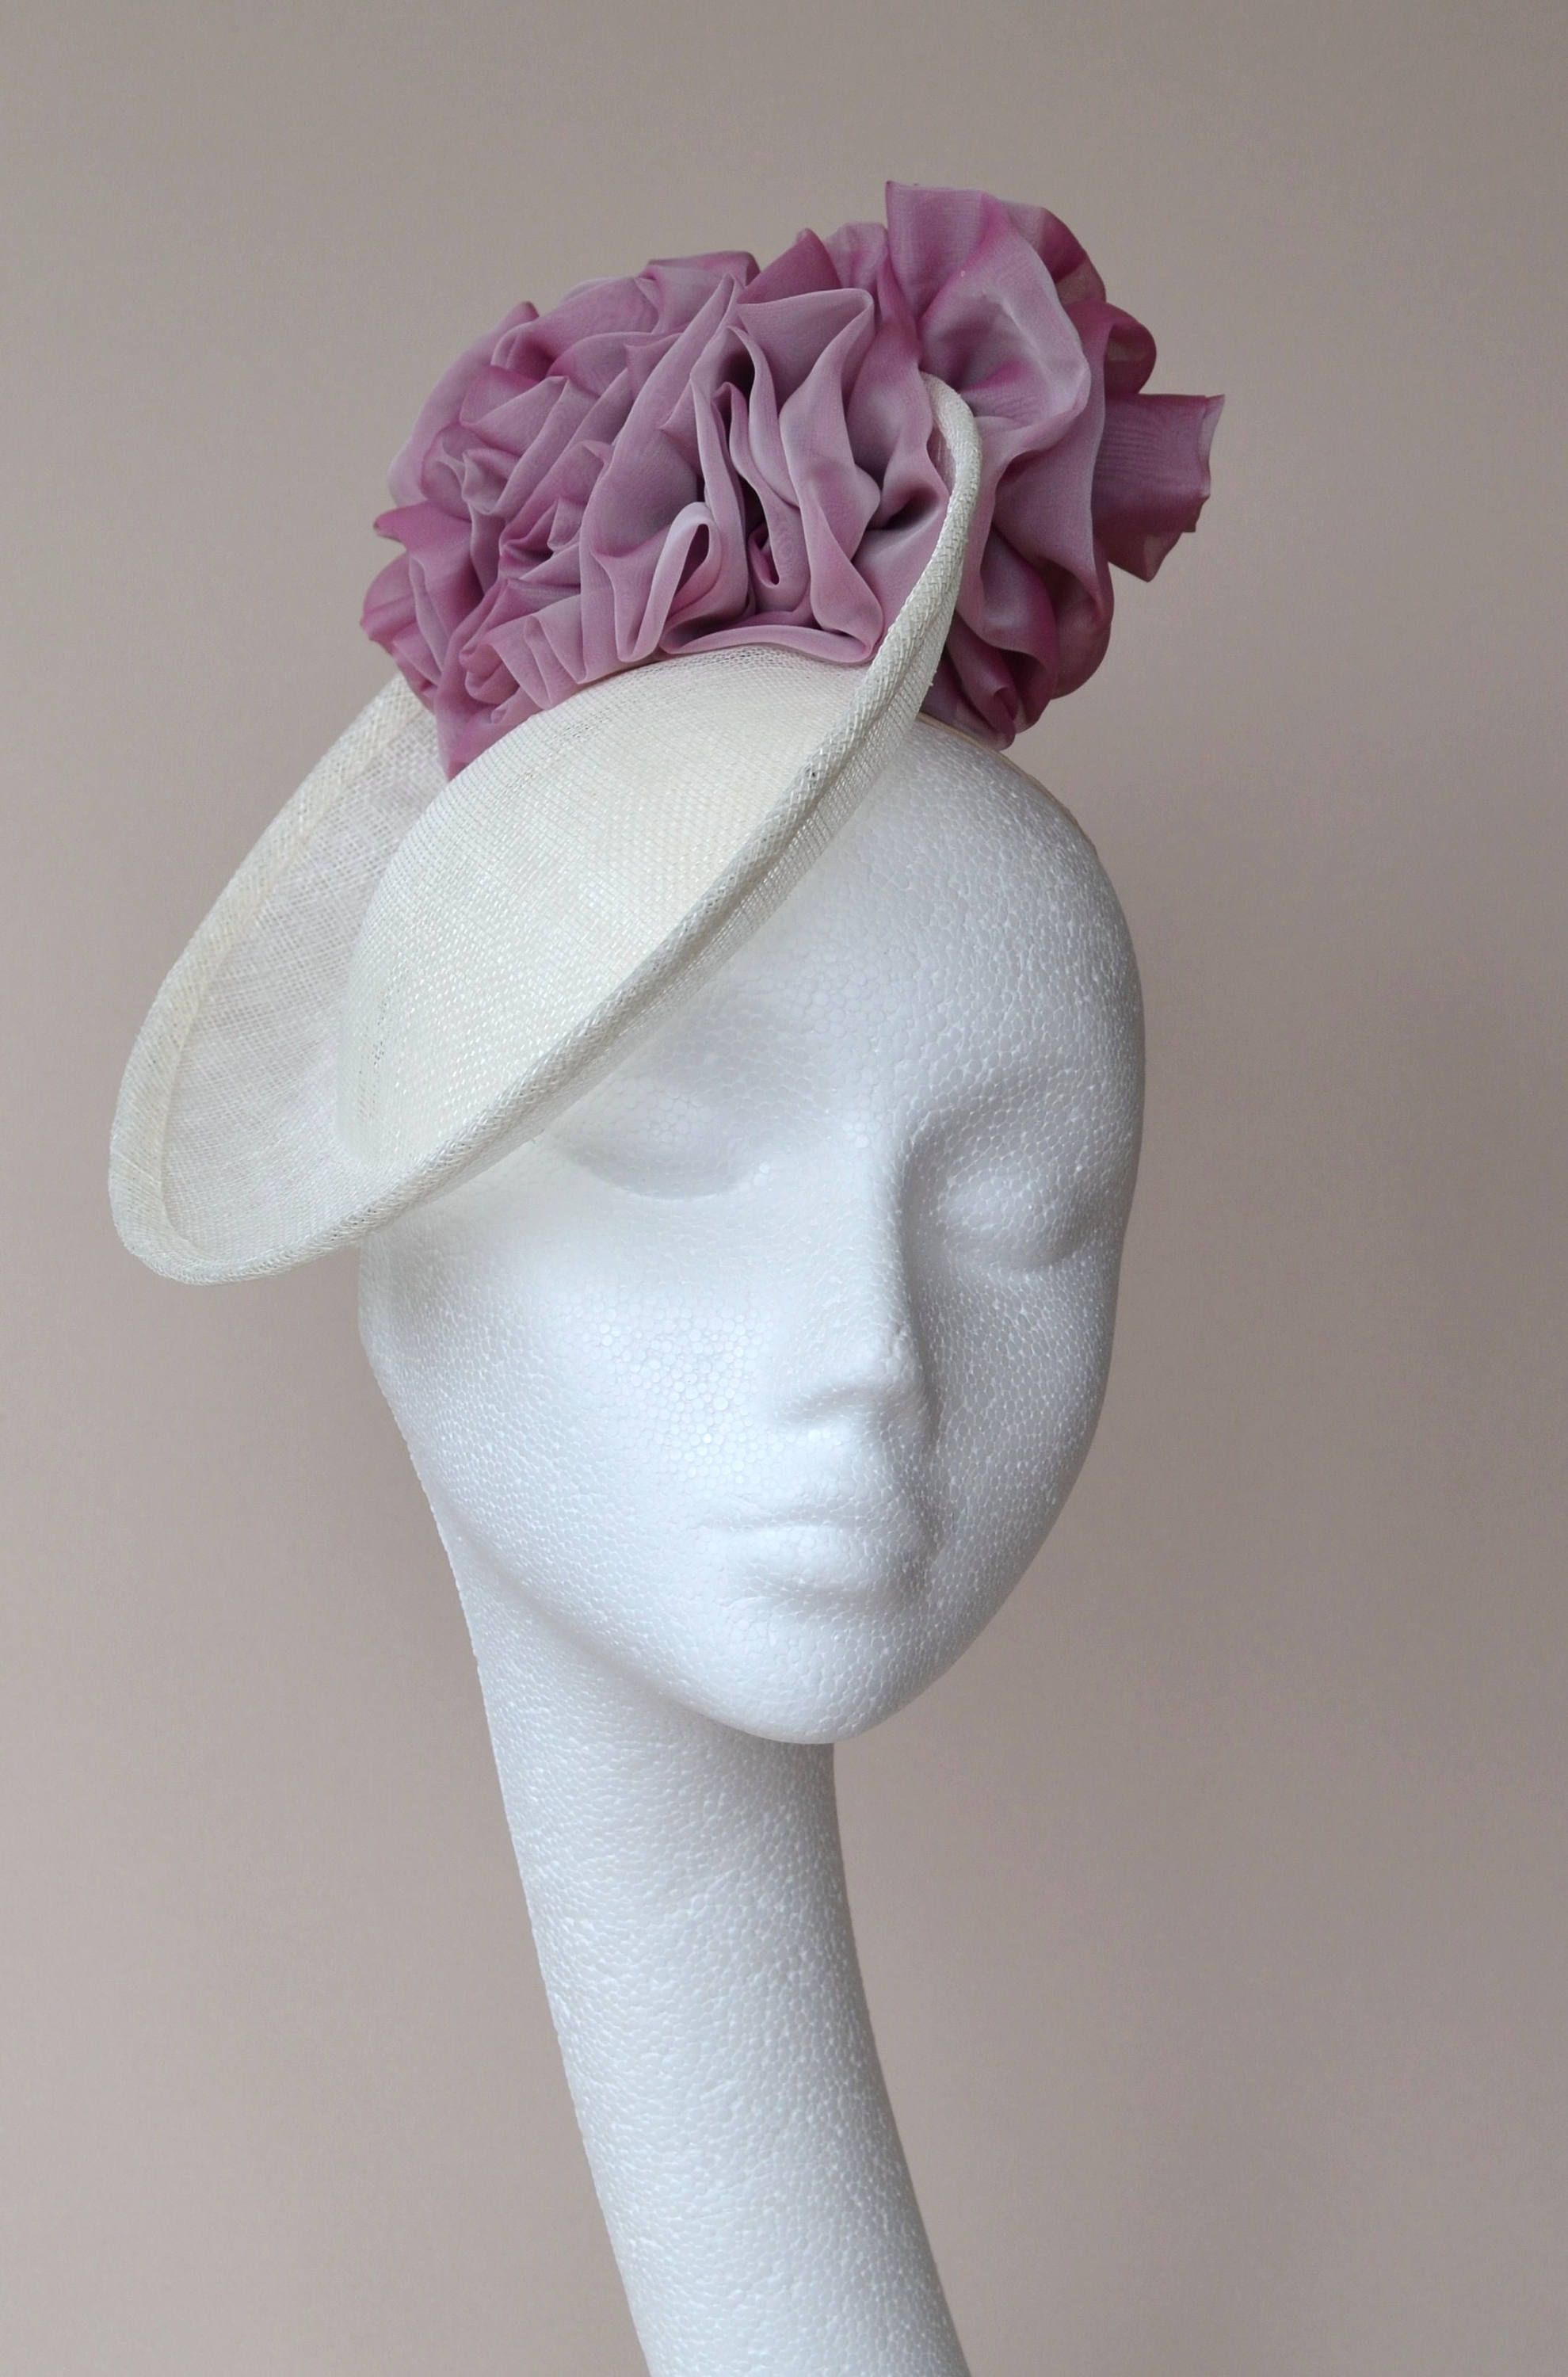 879a109ab59f3 Ivory saucer hat with rose pink flowers. Cream saucer hat. White disc hat.  Ivory wedding hat. Ivory percher hat. Ascot hat. Derby hat. by  jaracedesigns on ...